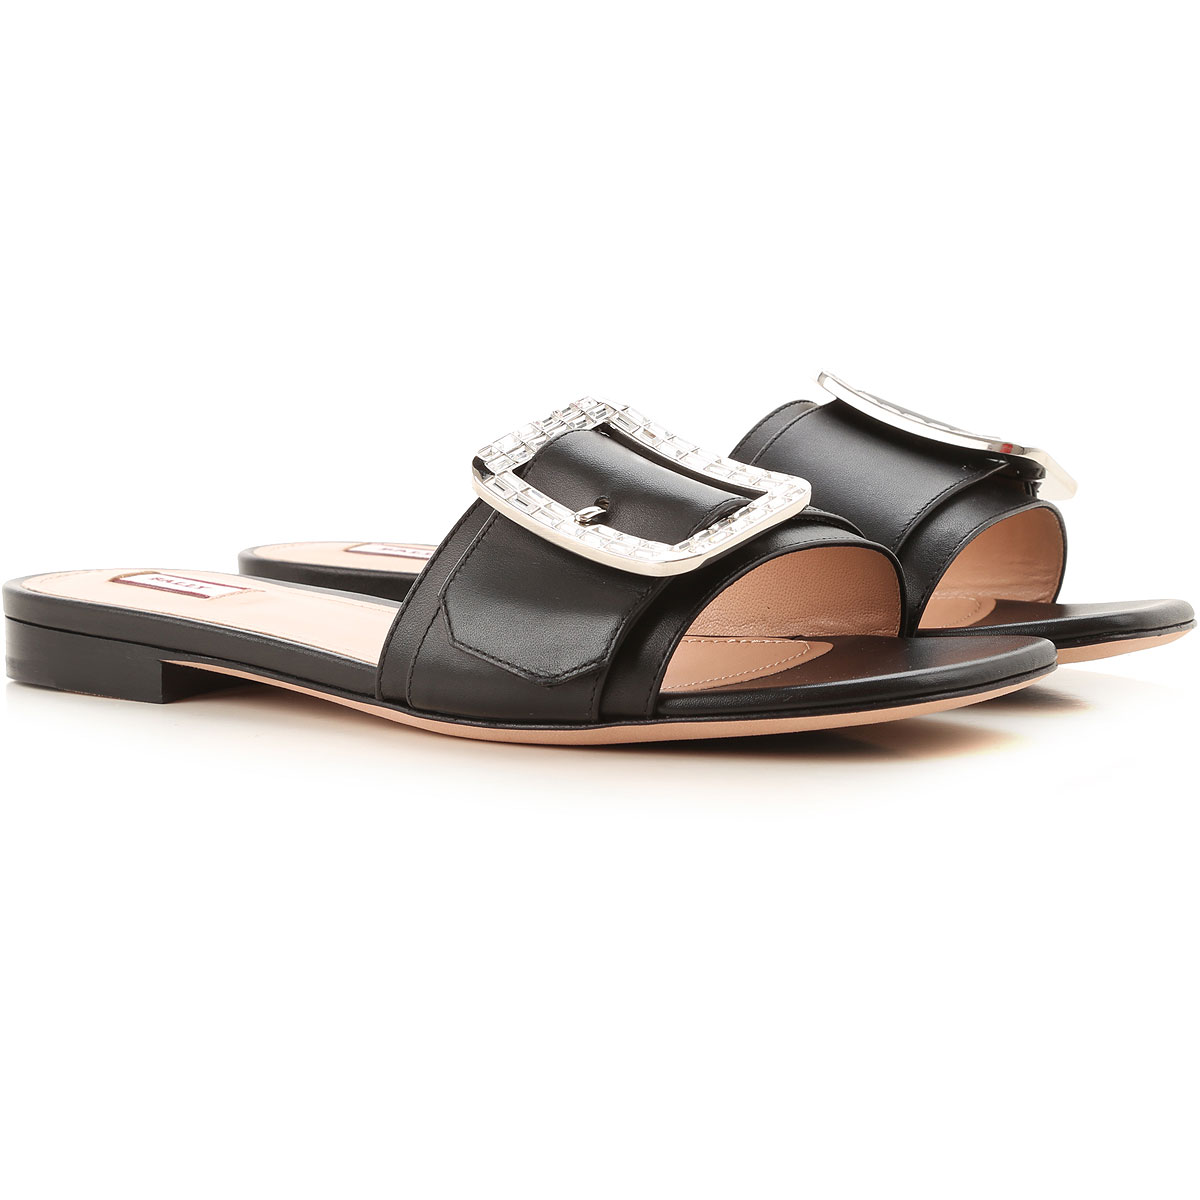 Bally Sandals for Women On Sale, Black, Leather, 2019, 10 6 6.5 7 8 8.5 9